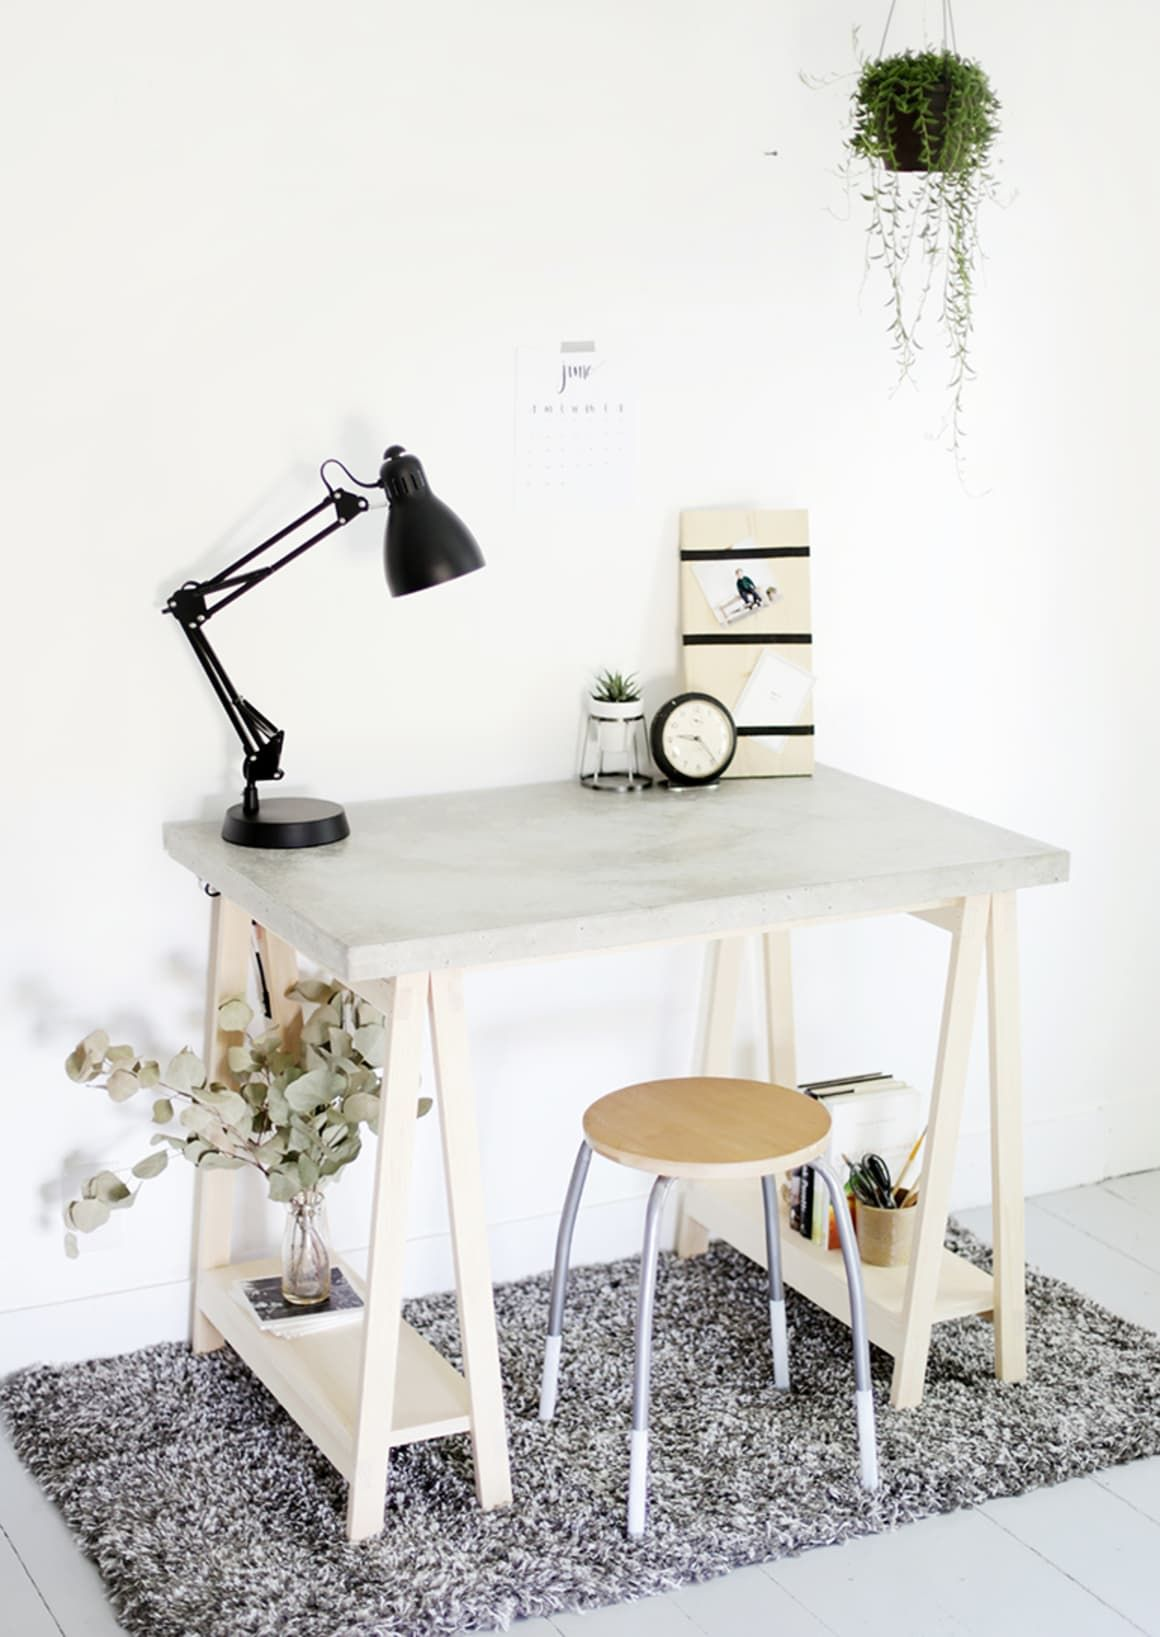 Diy Desk Ideas To Make Working From Home A Breeze In 2020 Diy Wood Desk Diy Desk Plans Diy Computer Desk